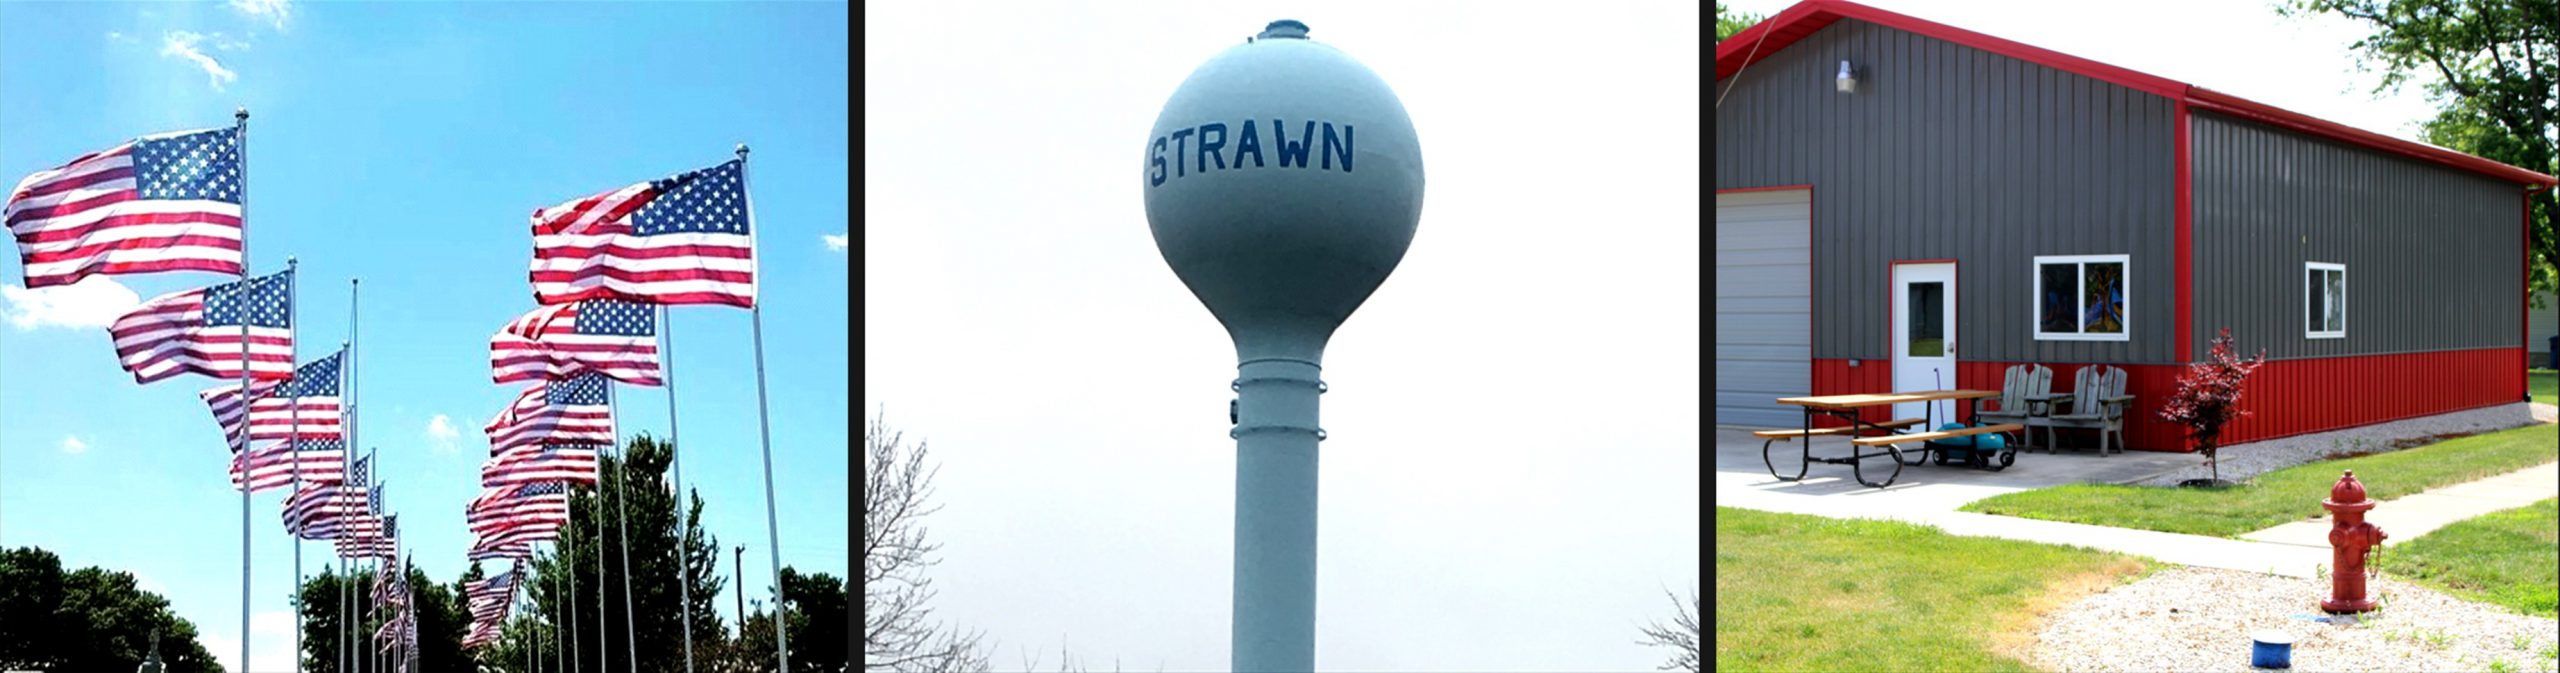 Strawn IL Attractions: Veterans memorial, water tower, and community building